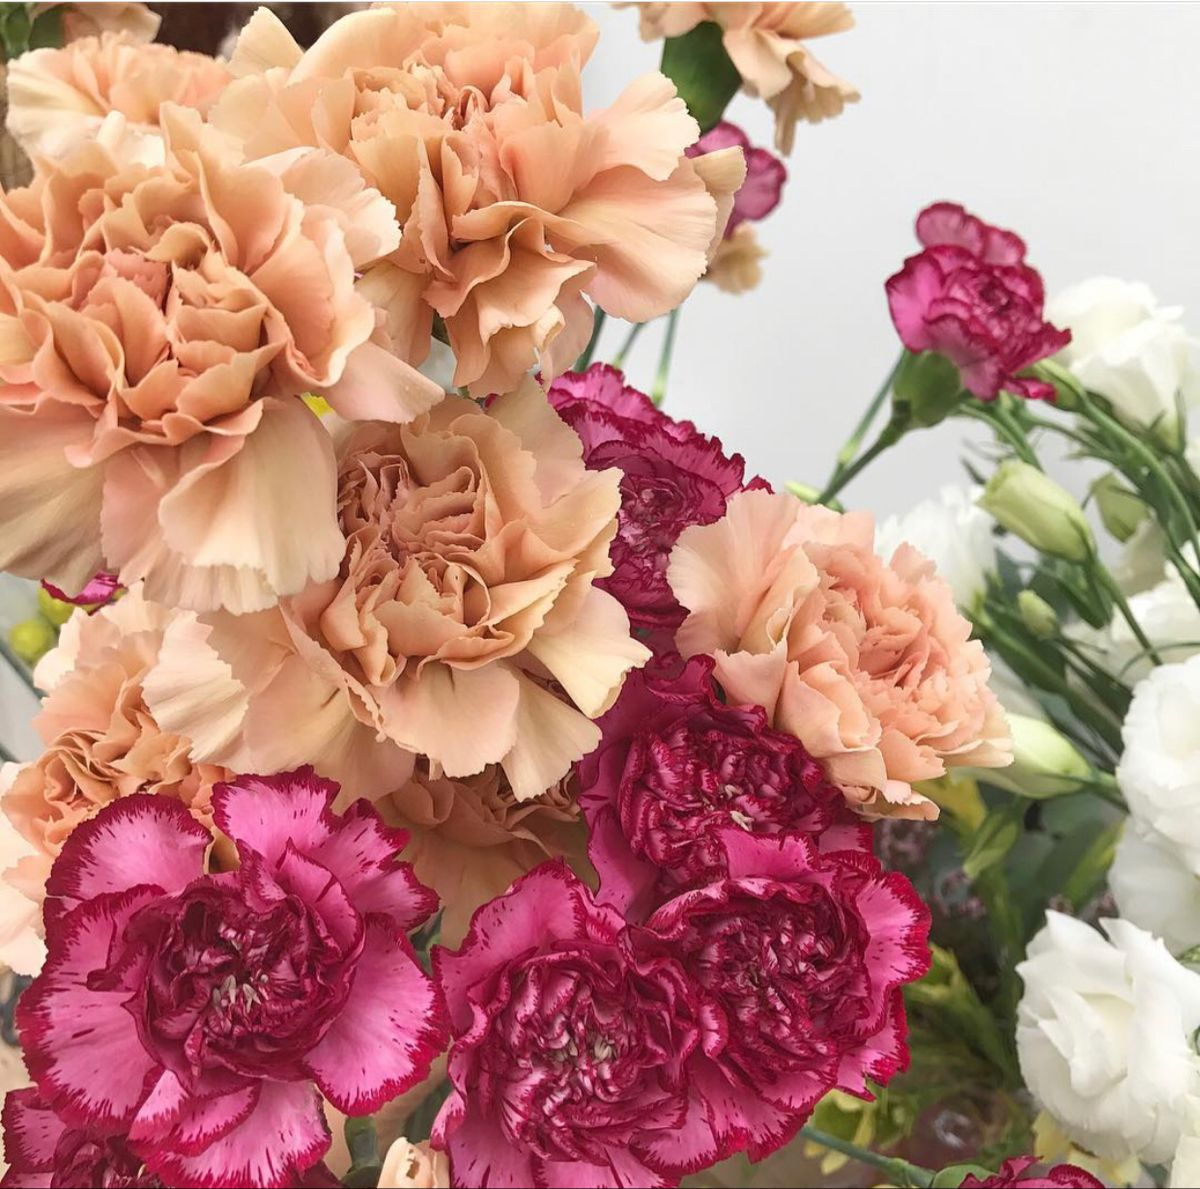 Wholesale Peach Carnation Flowers For Wedding In 2020 Wedding Flowers Carnation Flower Wholesale Flowers